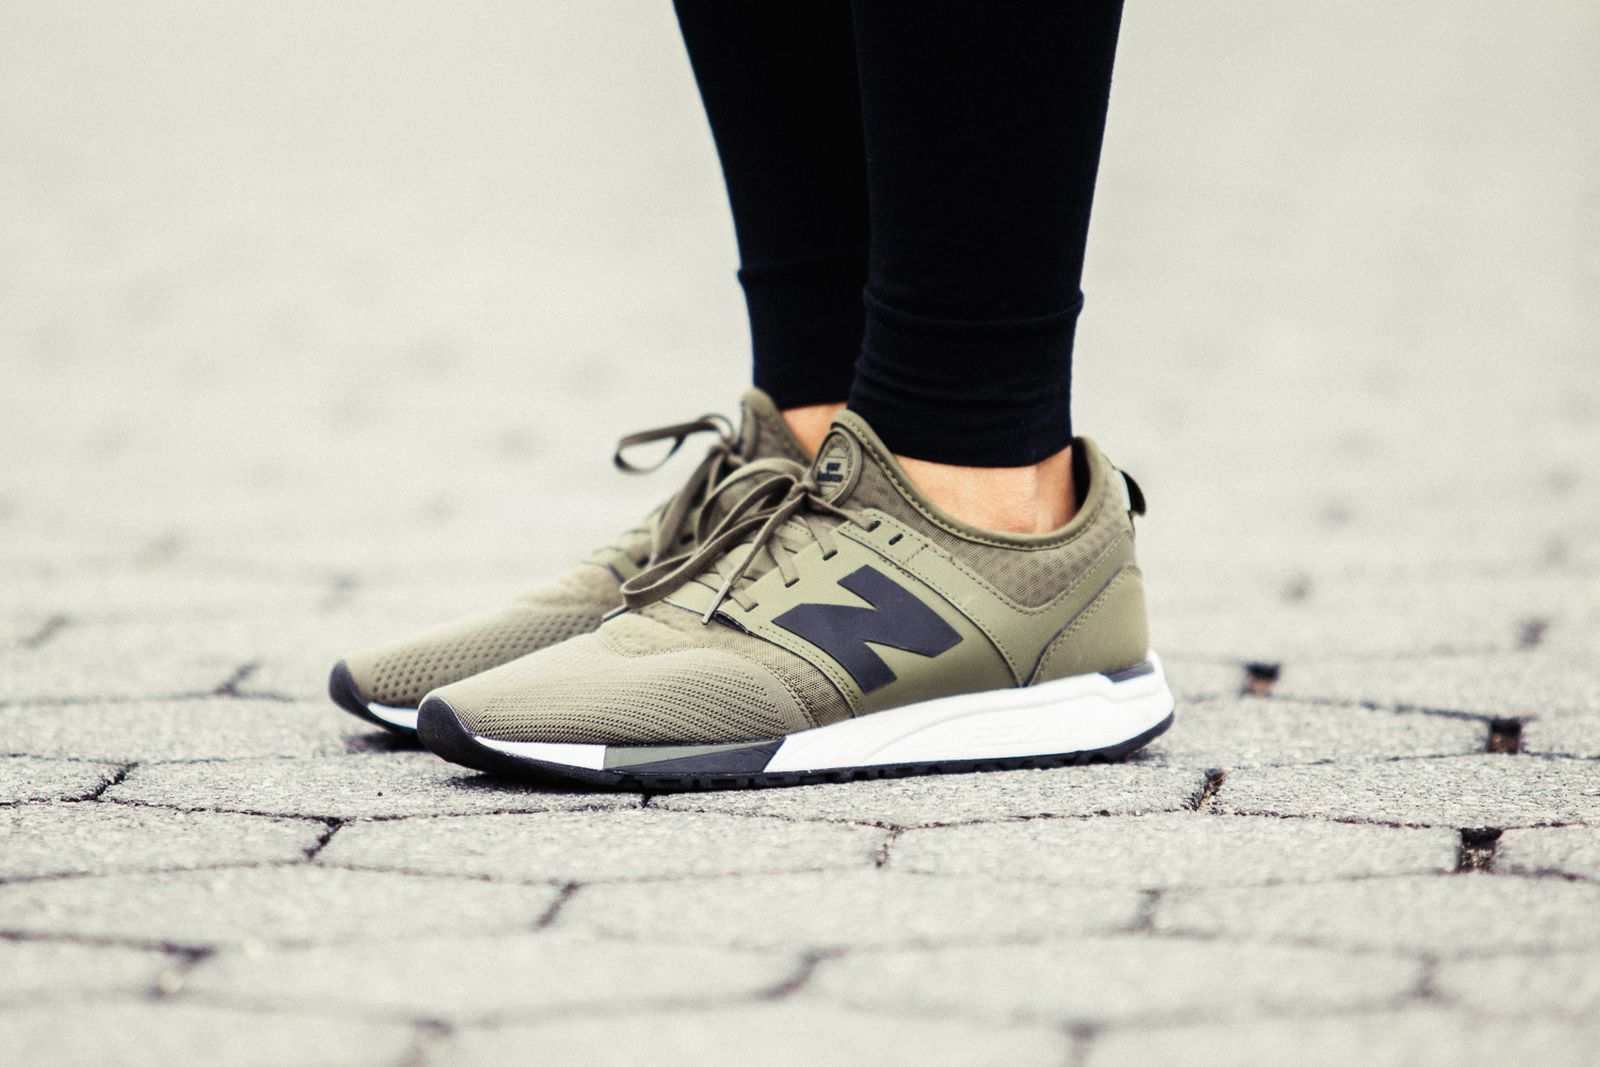 On Feet: Reviewing the Latest New Balance 247 Sport